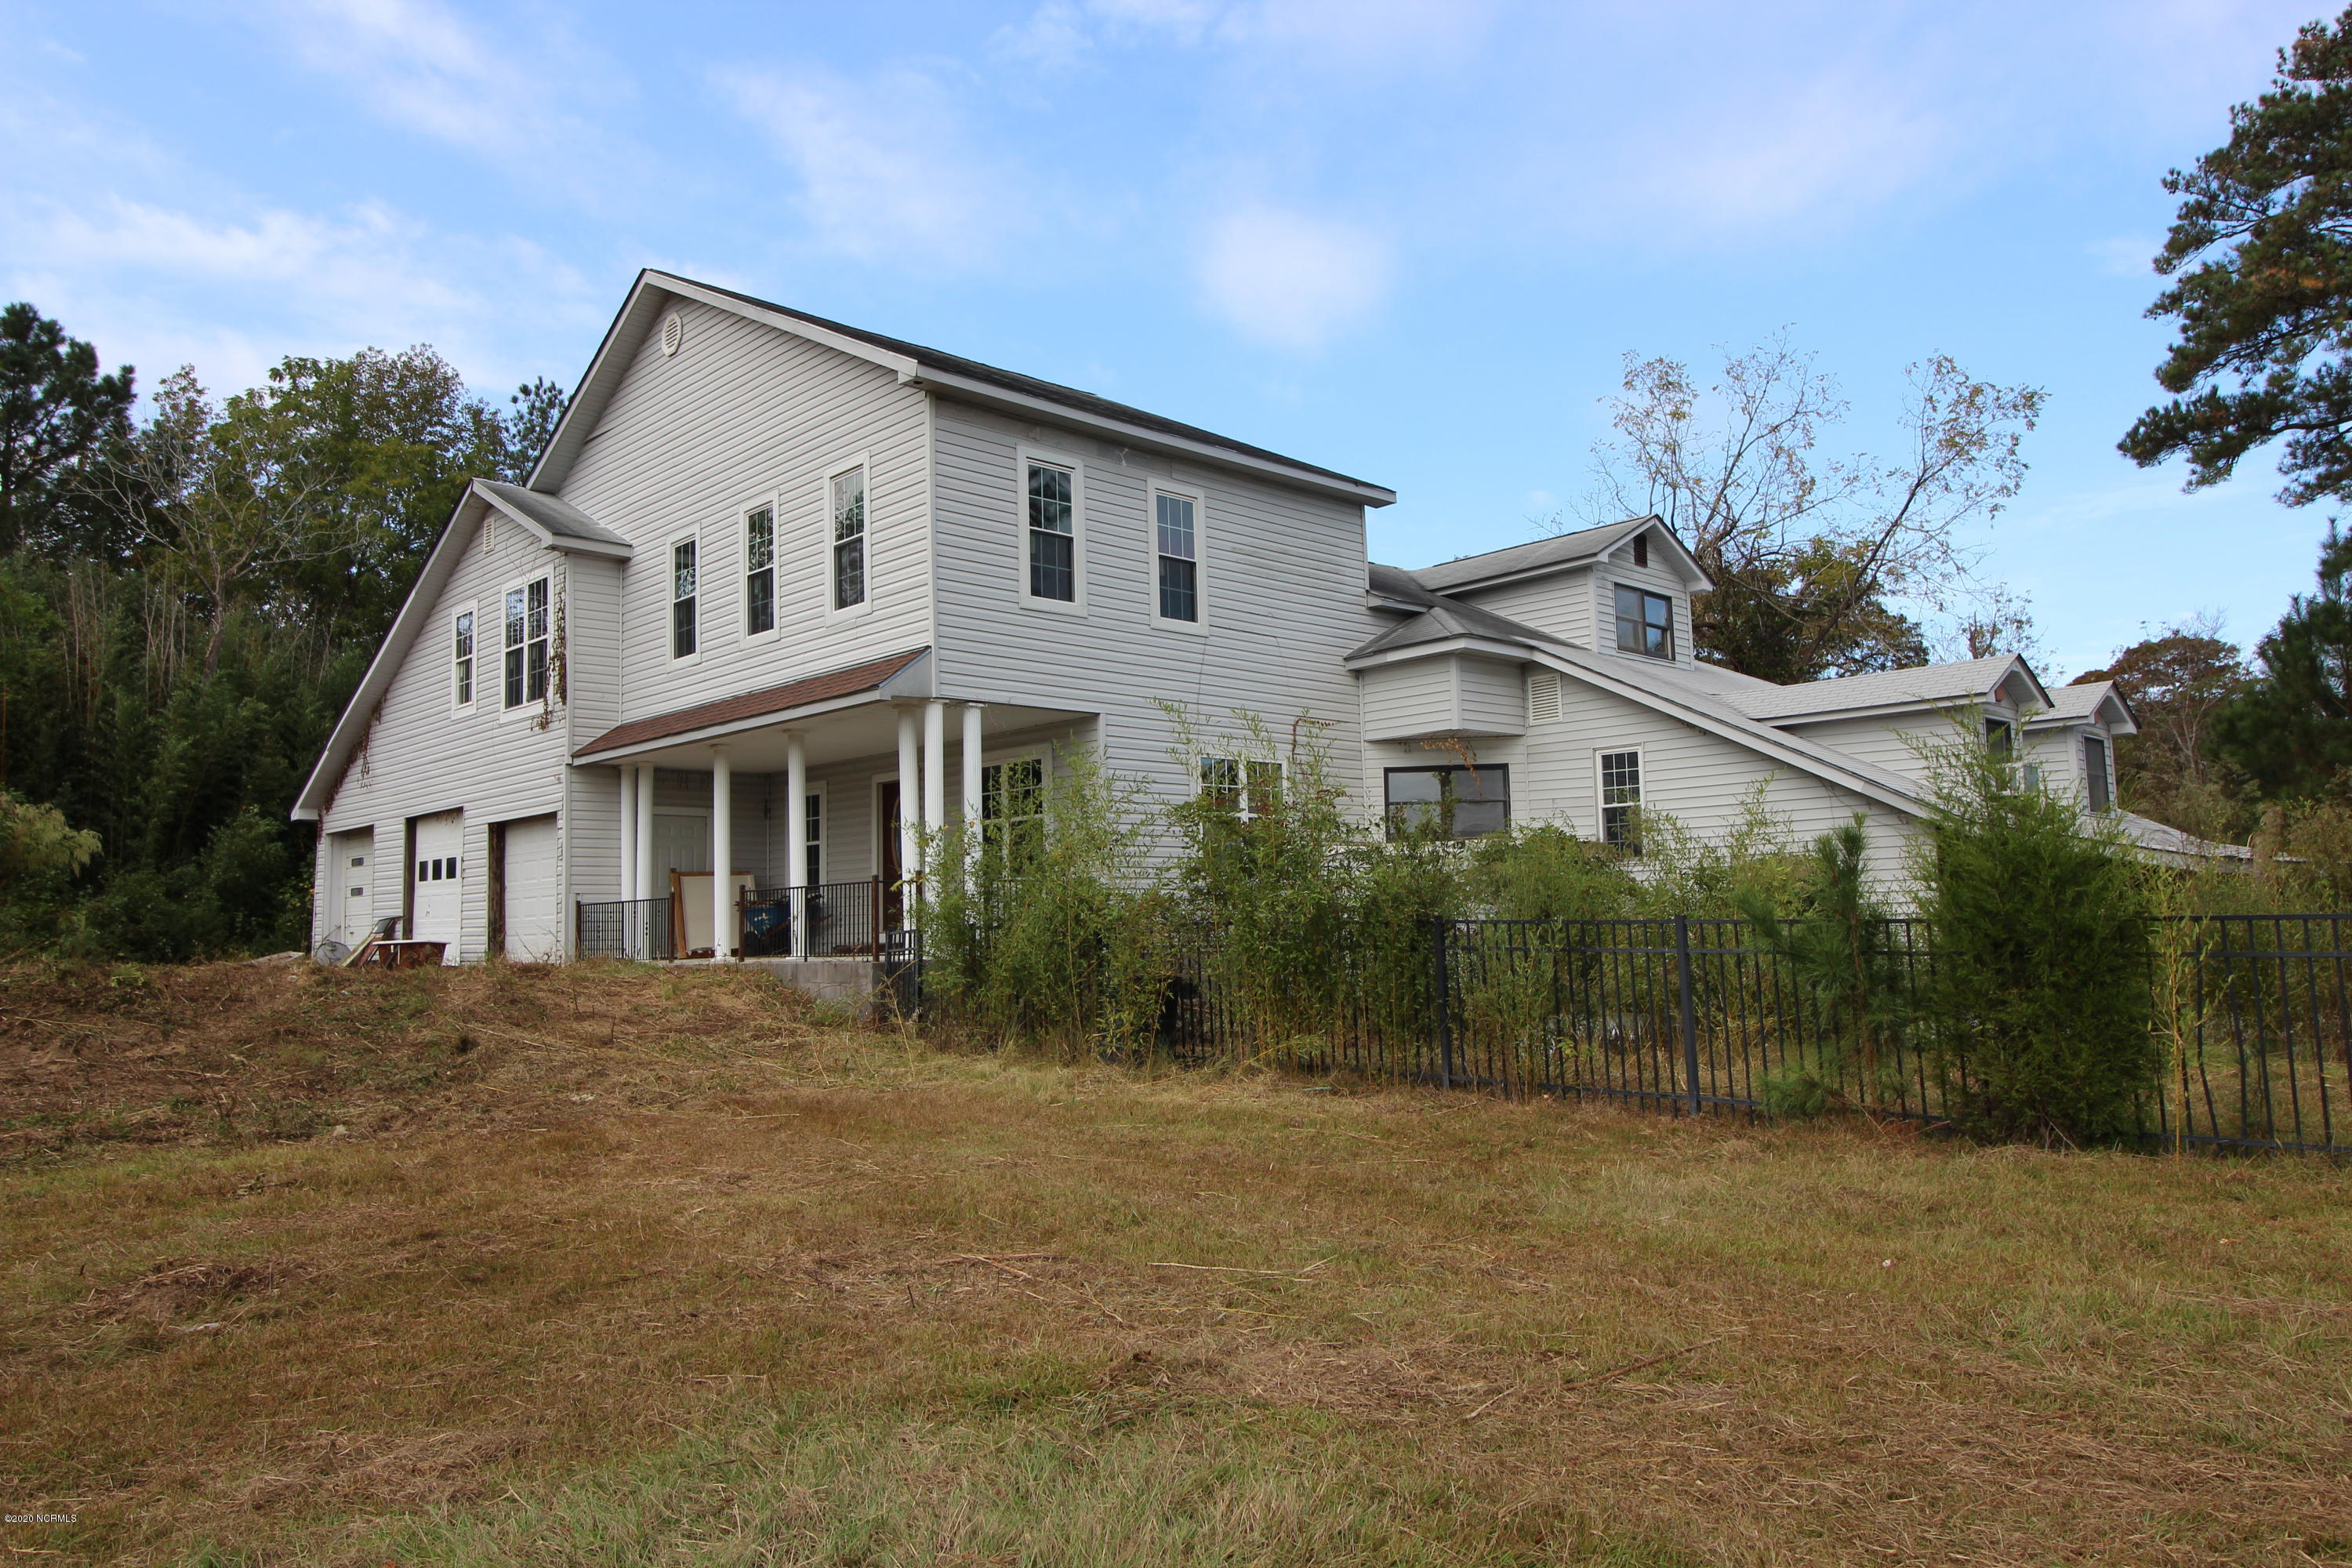 440 Clarks Neck Road, Washington, North Carolina 27889, 4 Bedrooms Bedrooms, 10 Rooms Rooms,3 BathroomsBathrooms,Single family residence,For sale,Clarks Neck,100243547